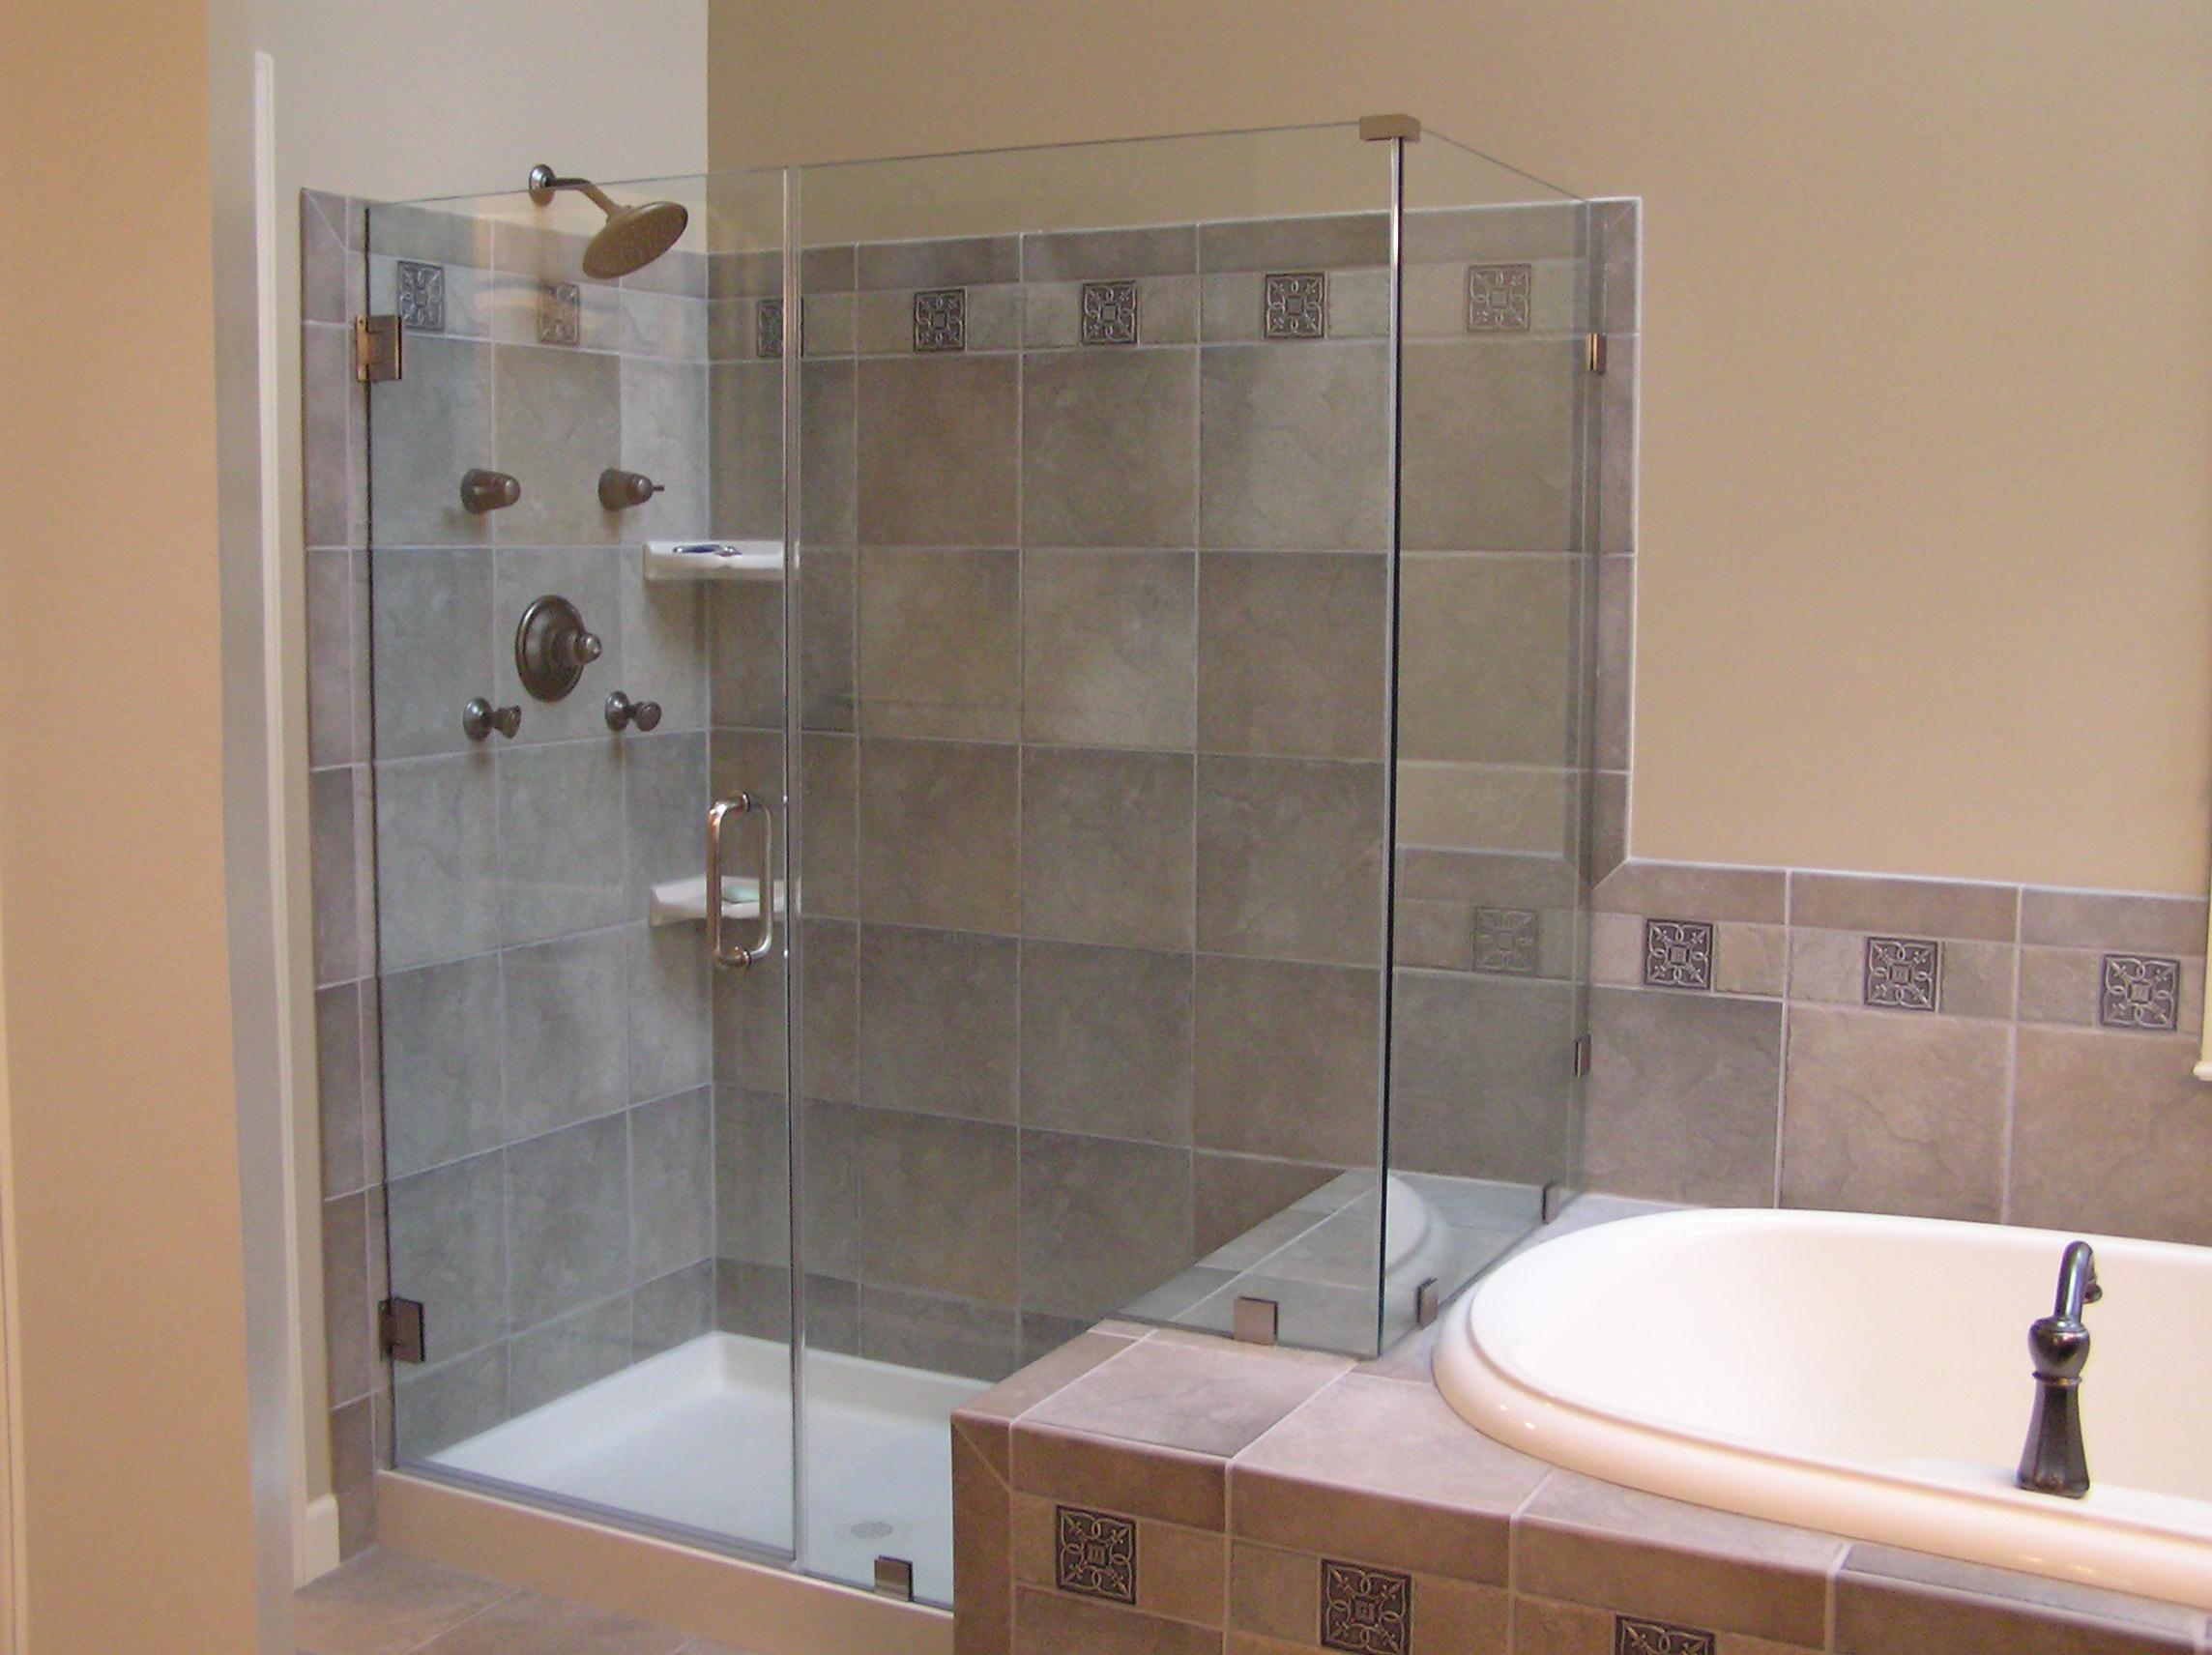 Bathroom Renovation Ideas Images bathroom remodel delaware - home improvement contractors